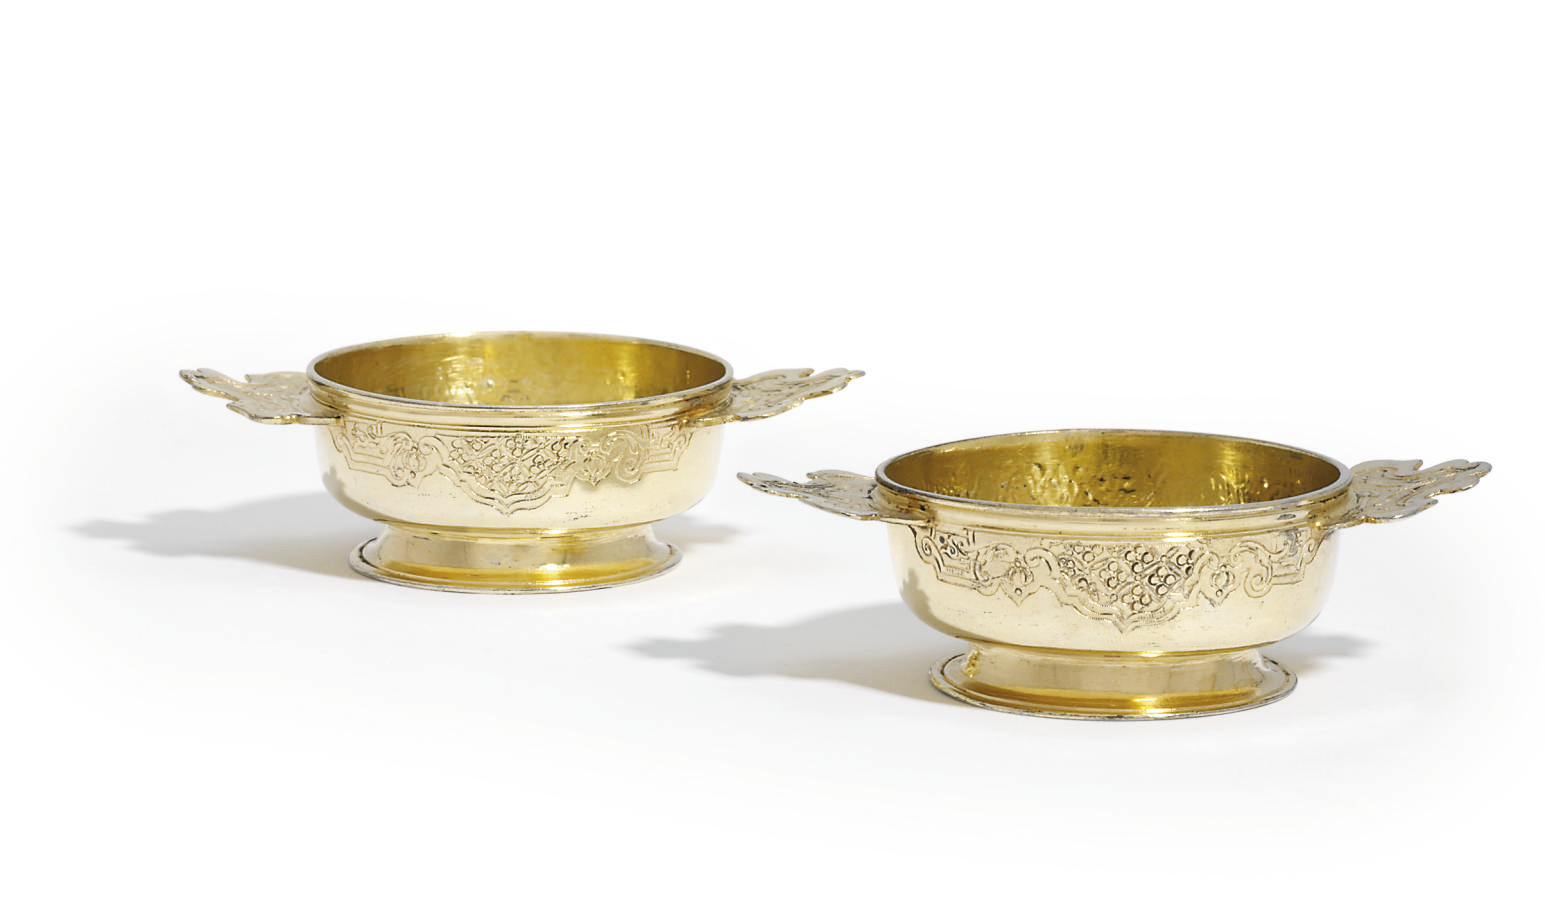 A PAIR OF GERMAN SILVER-GILT TWO-HANDLED BOWLS